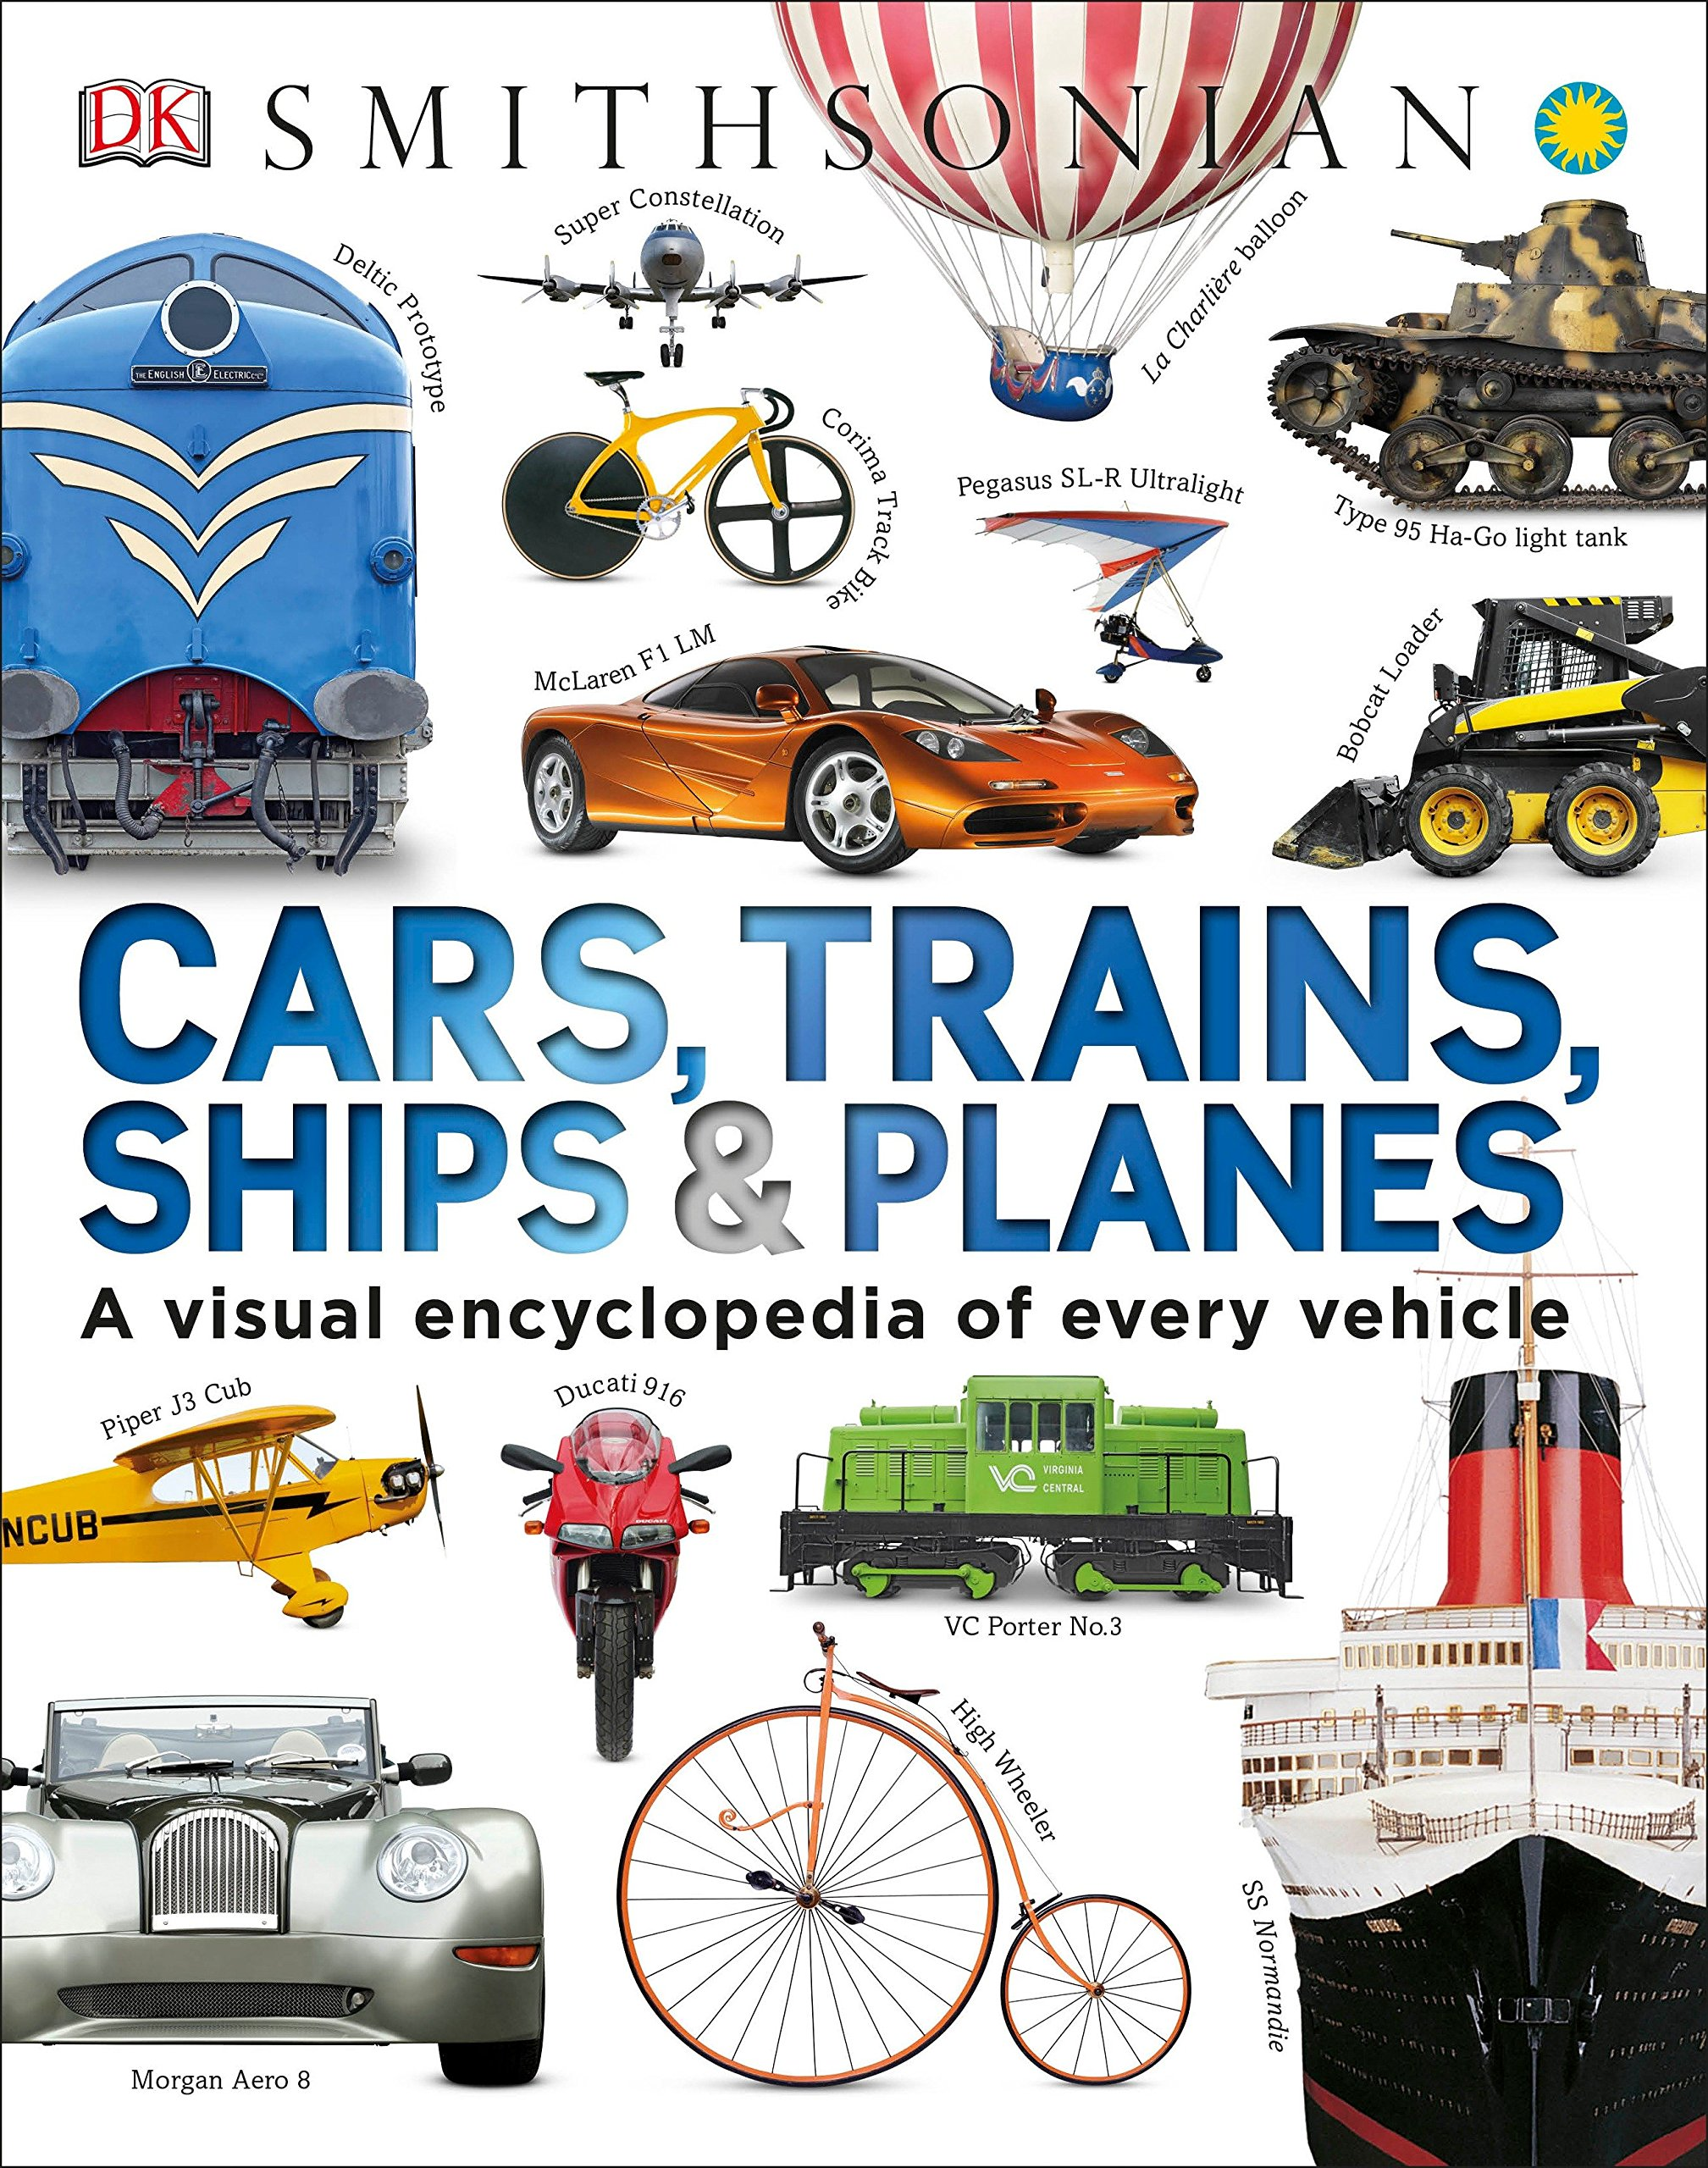 Cars, Trains, Ships & Planes: A Visual Encyclopedia of Every Vehicle